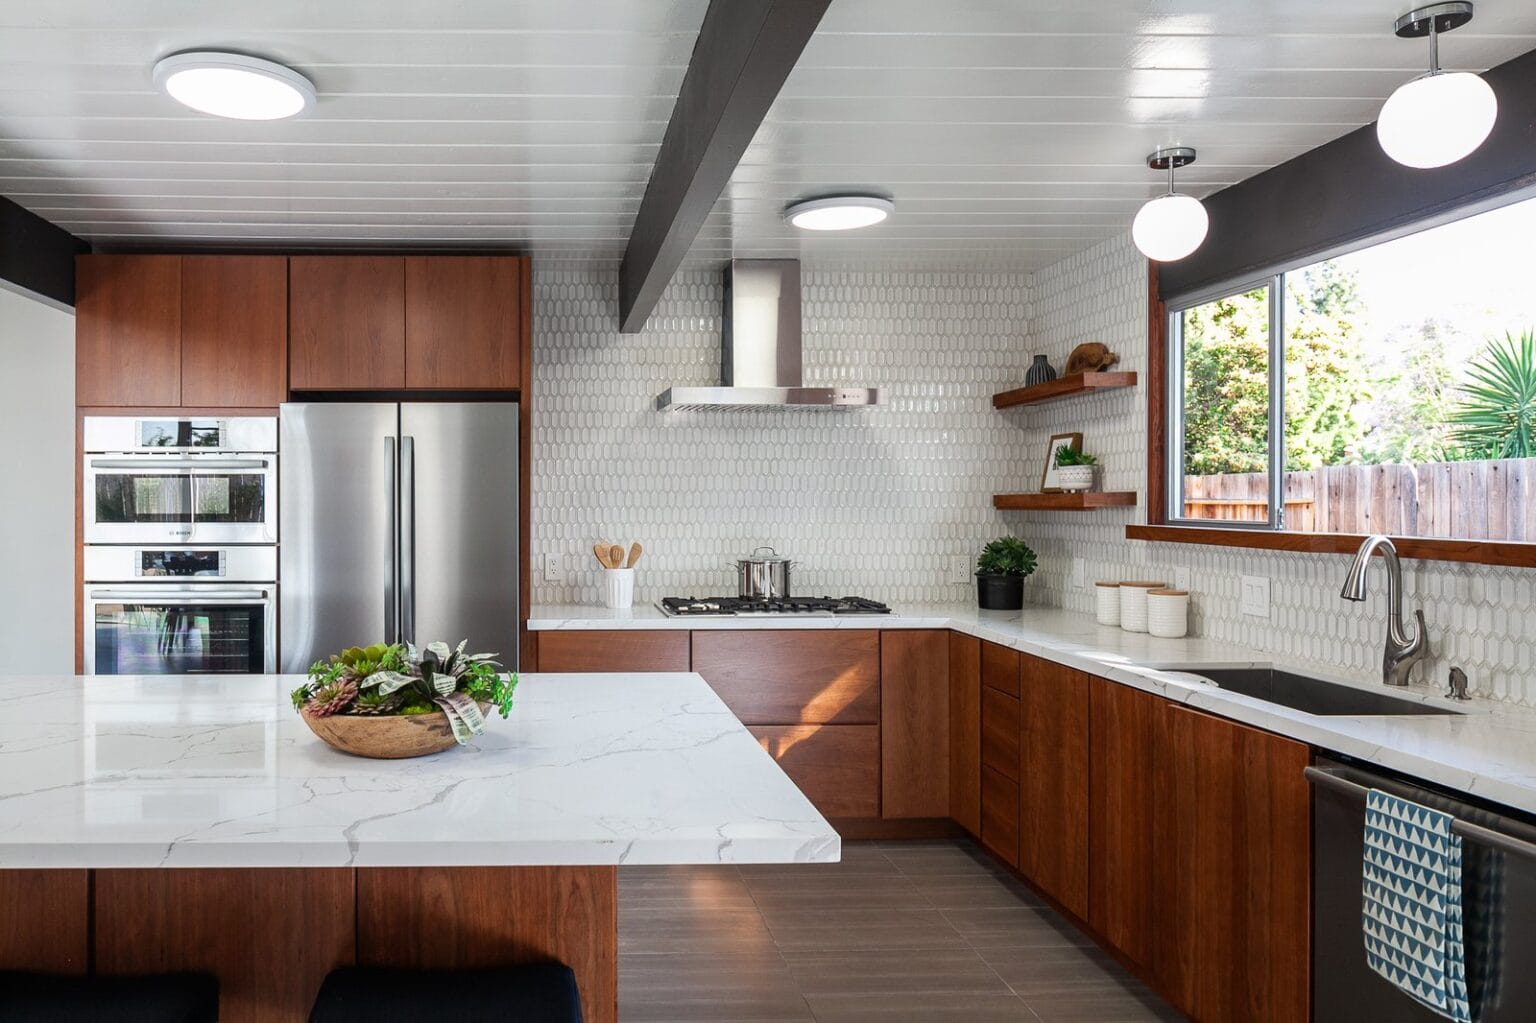 the-open-kitchen-is-bright-and-airy-with-updates-which-include-a-marble-topped-island-stainless-steel-appliances-and-a-stylish-tile-backsplash